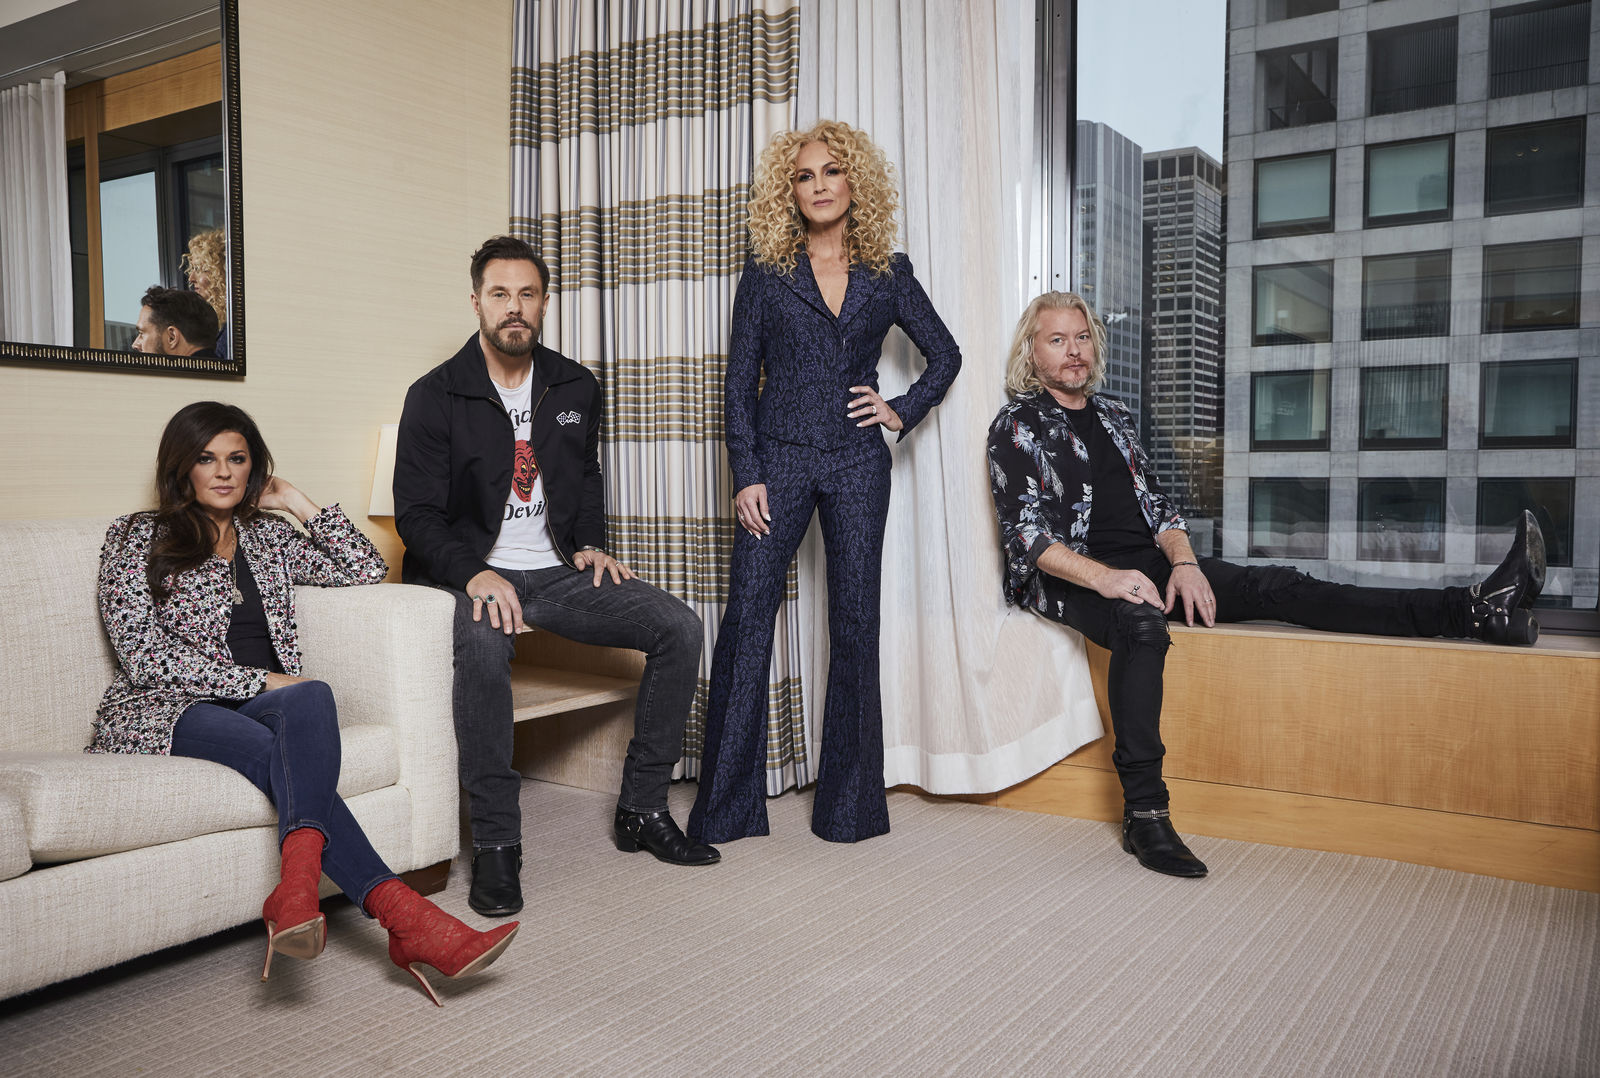 "This Jan. 13, 2020 photo shows members of the country group Little Big Town, from left, Karen Fairchild, Jimi Westbrook, Kimberly Schlapman and Phillip Sweet posing for a portrait in New York to promote their new album ""Nightfall,"" out on Friday.  (Photo by Matt Licari/Invision/AP)"